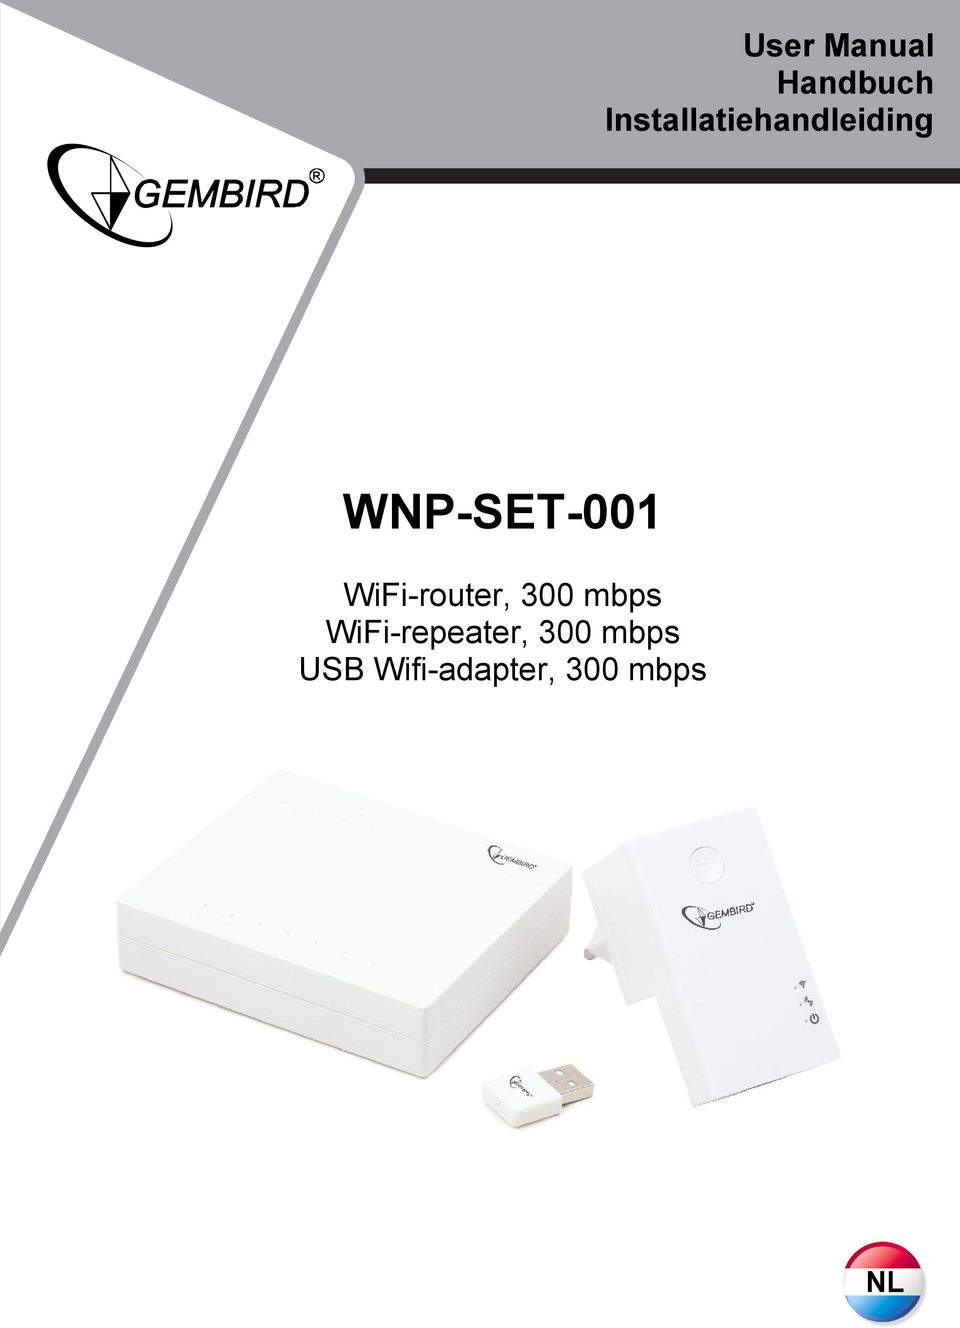 WiFi-router, 300 mbps